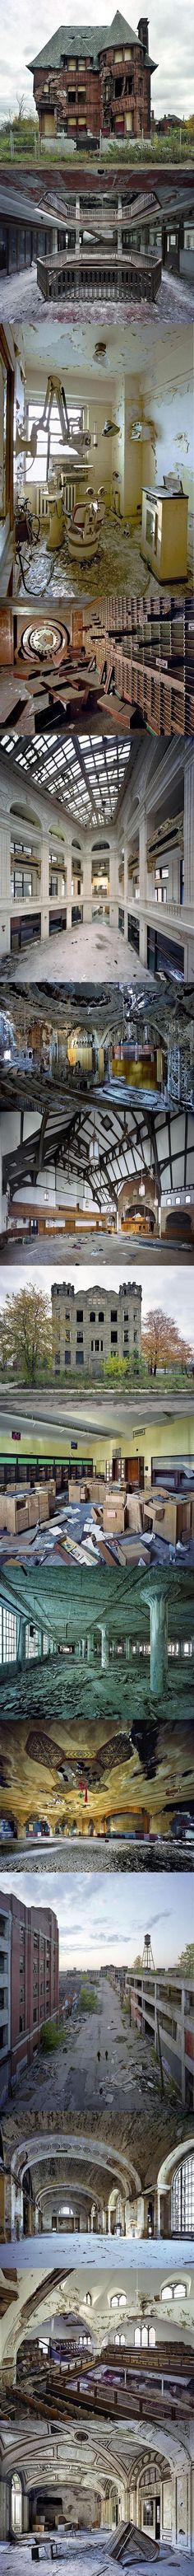 Detroit is a ghost city